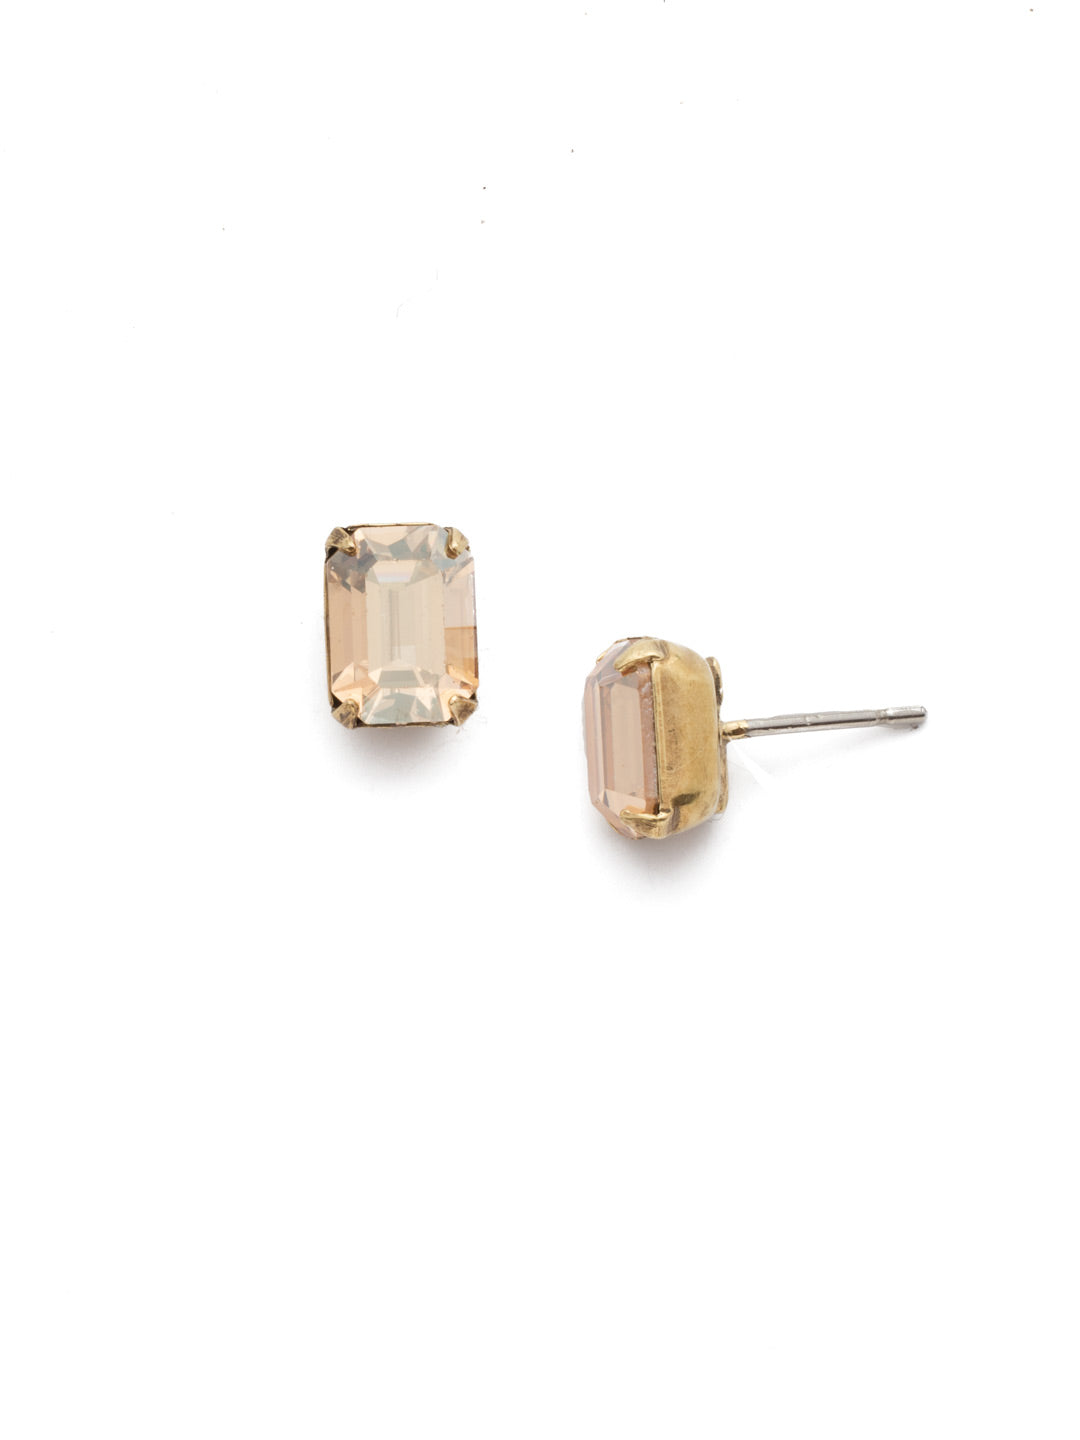 Mini Emerald Cut Stud Earring - Sorrelli Essentials - EBY42AGDCH